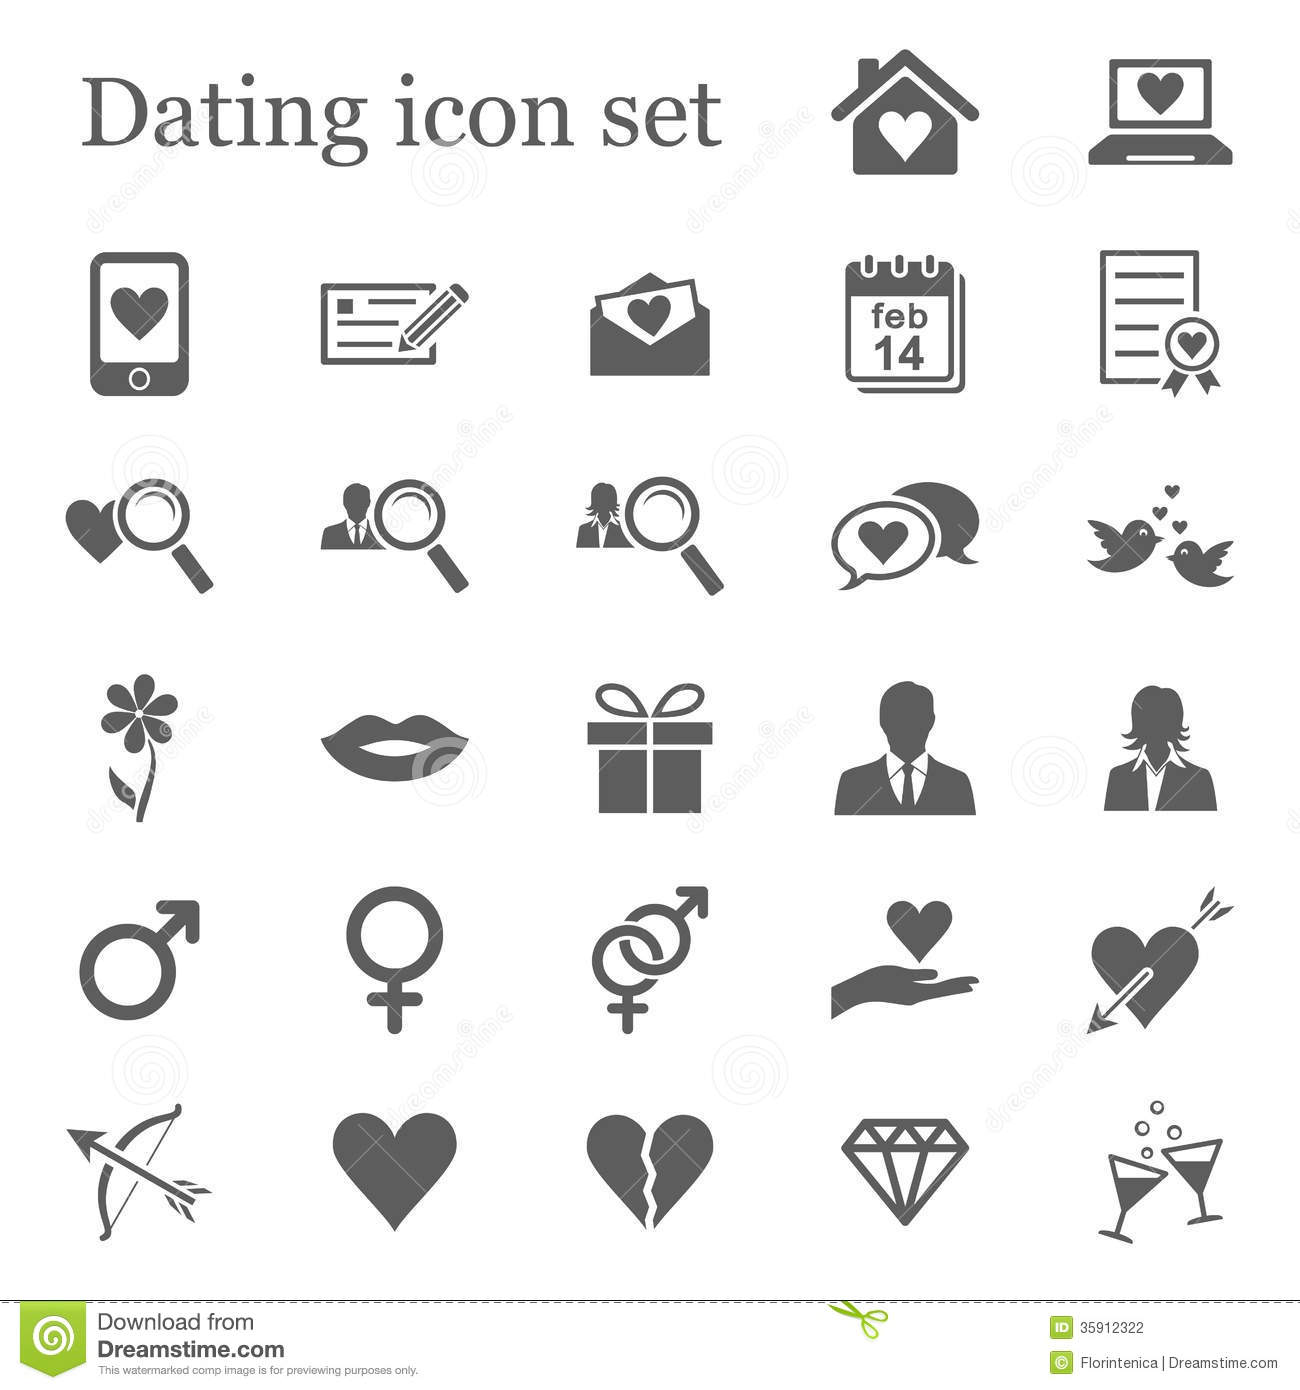 Tinder dating site search